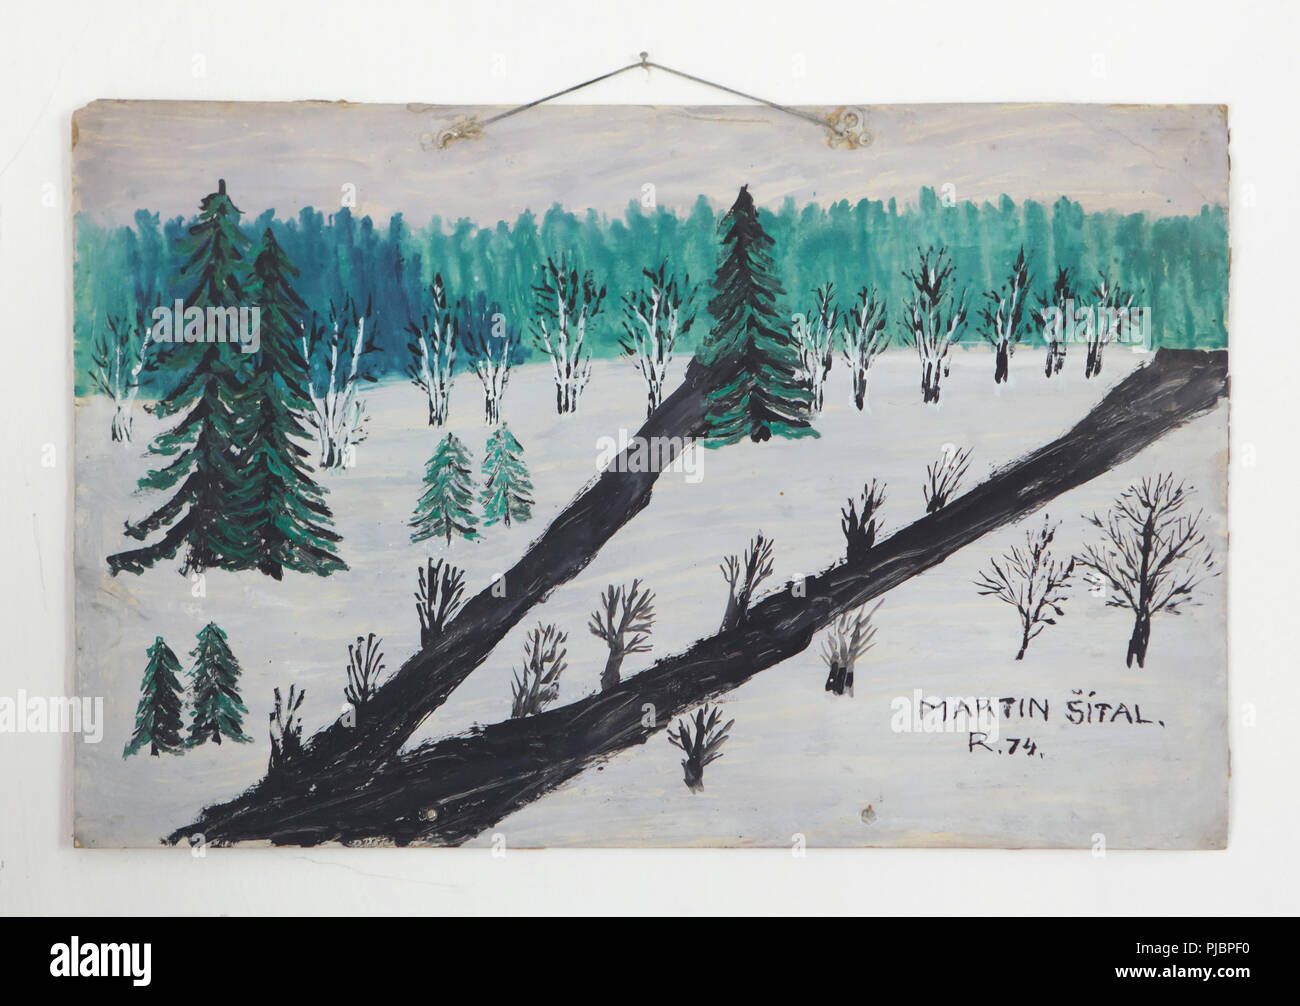 Winter landscape painting by Czech naïve painter Martin Šítal (1974) on display at the permanent exhibition devoted to naïve art by Martin Šítal (1901-1983) and his wife Marie Šítalová (1904-1979) entitled 'The Painted World of the Šital Family' ('Malovaný svět manželů Šítalových') in the Kantůrkovec Museum in Velešín, South Bohemia, Czech Republic. - Stock Image